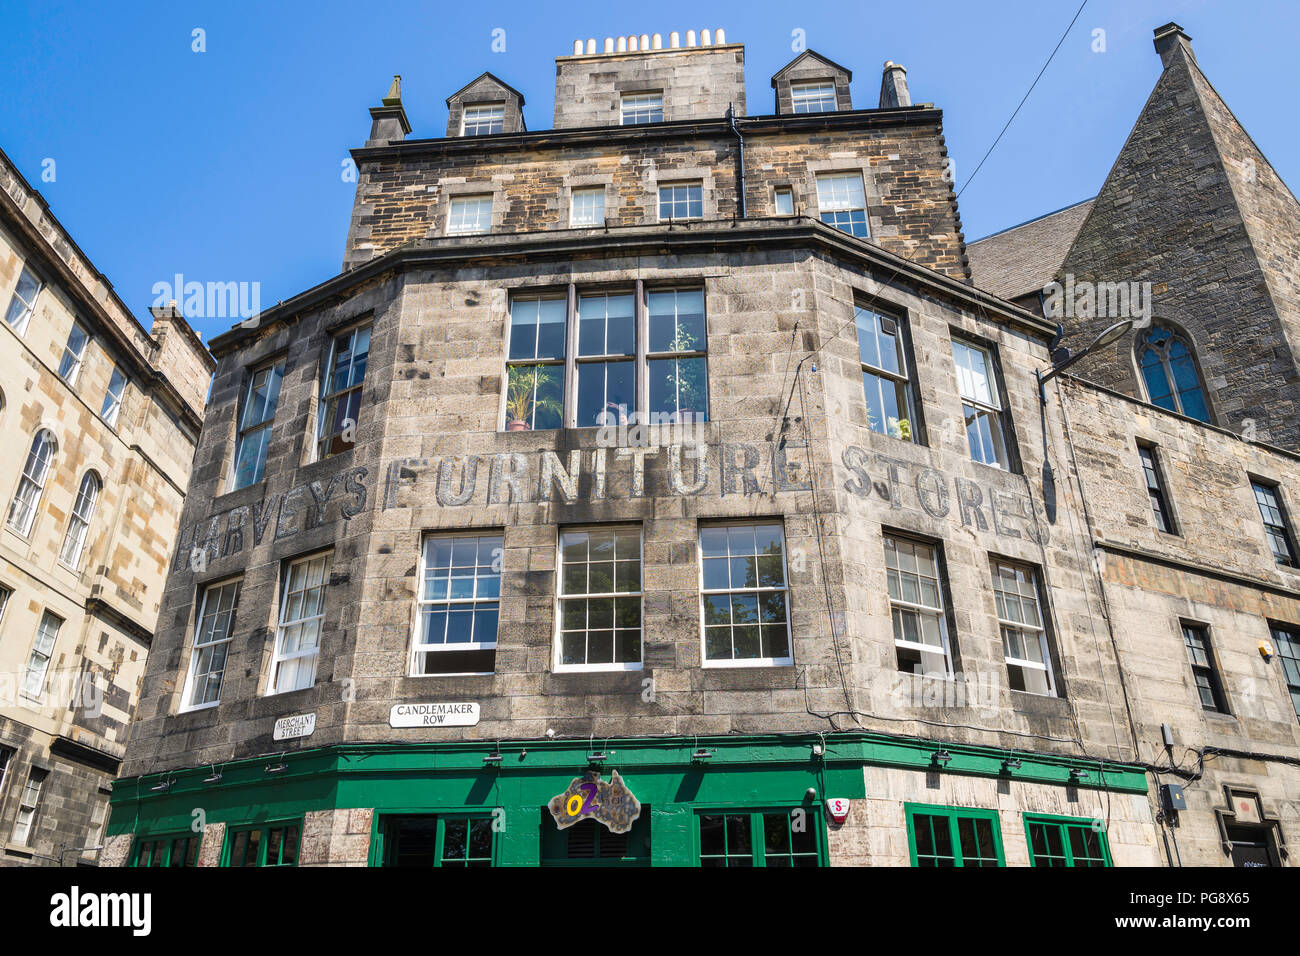 The former Harvey's Furniture Stores in Candlemaker Row, Edinburgh, Scotland, is now a popular Australian bar. Stock Photo